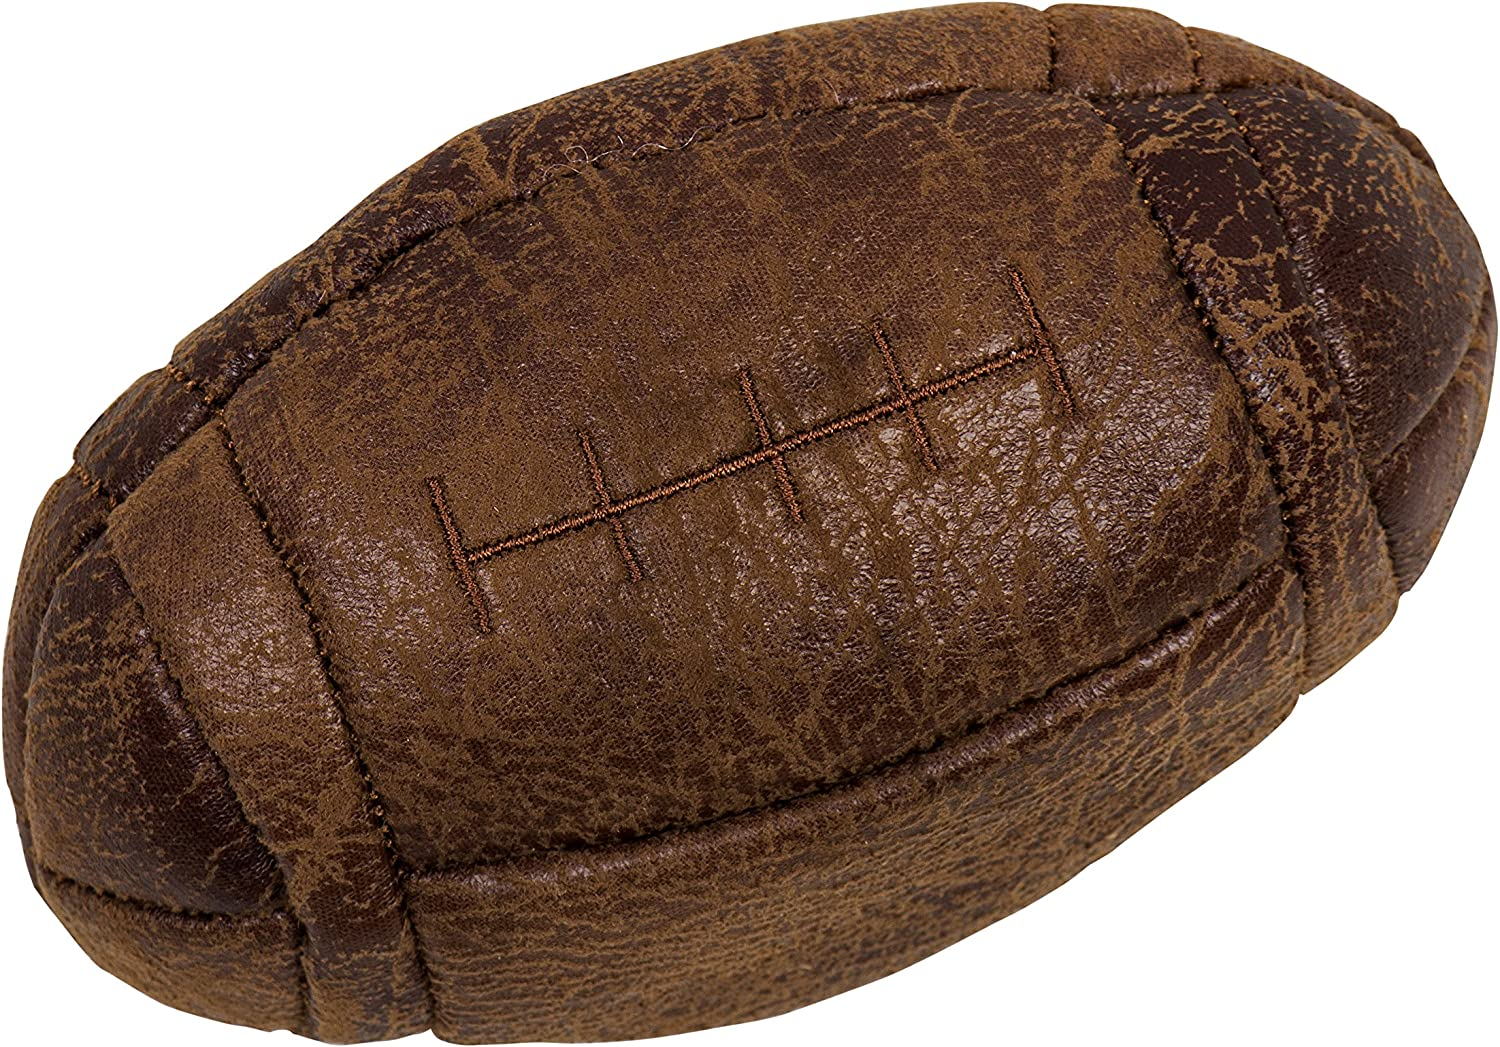 Lixit Animal Care Lixit Vintage Football, Small